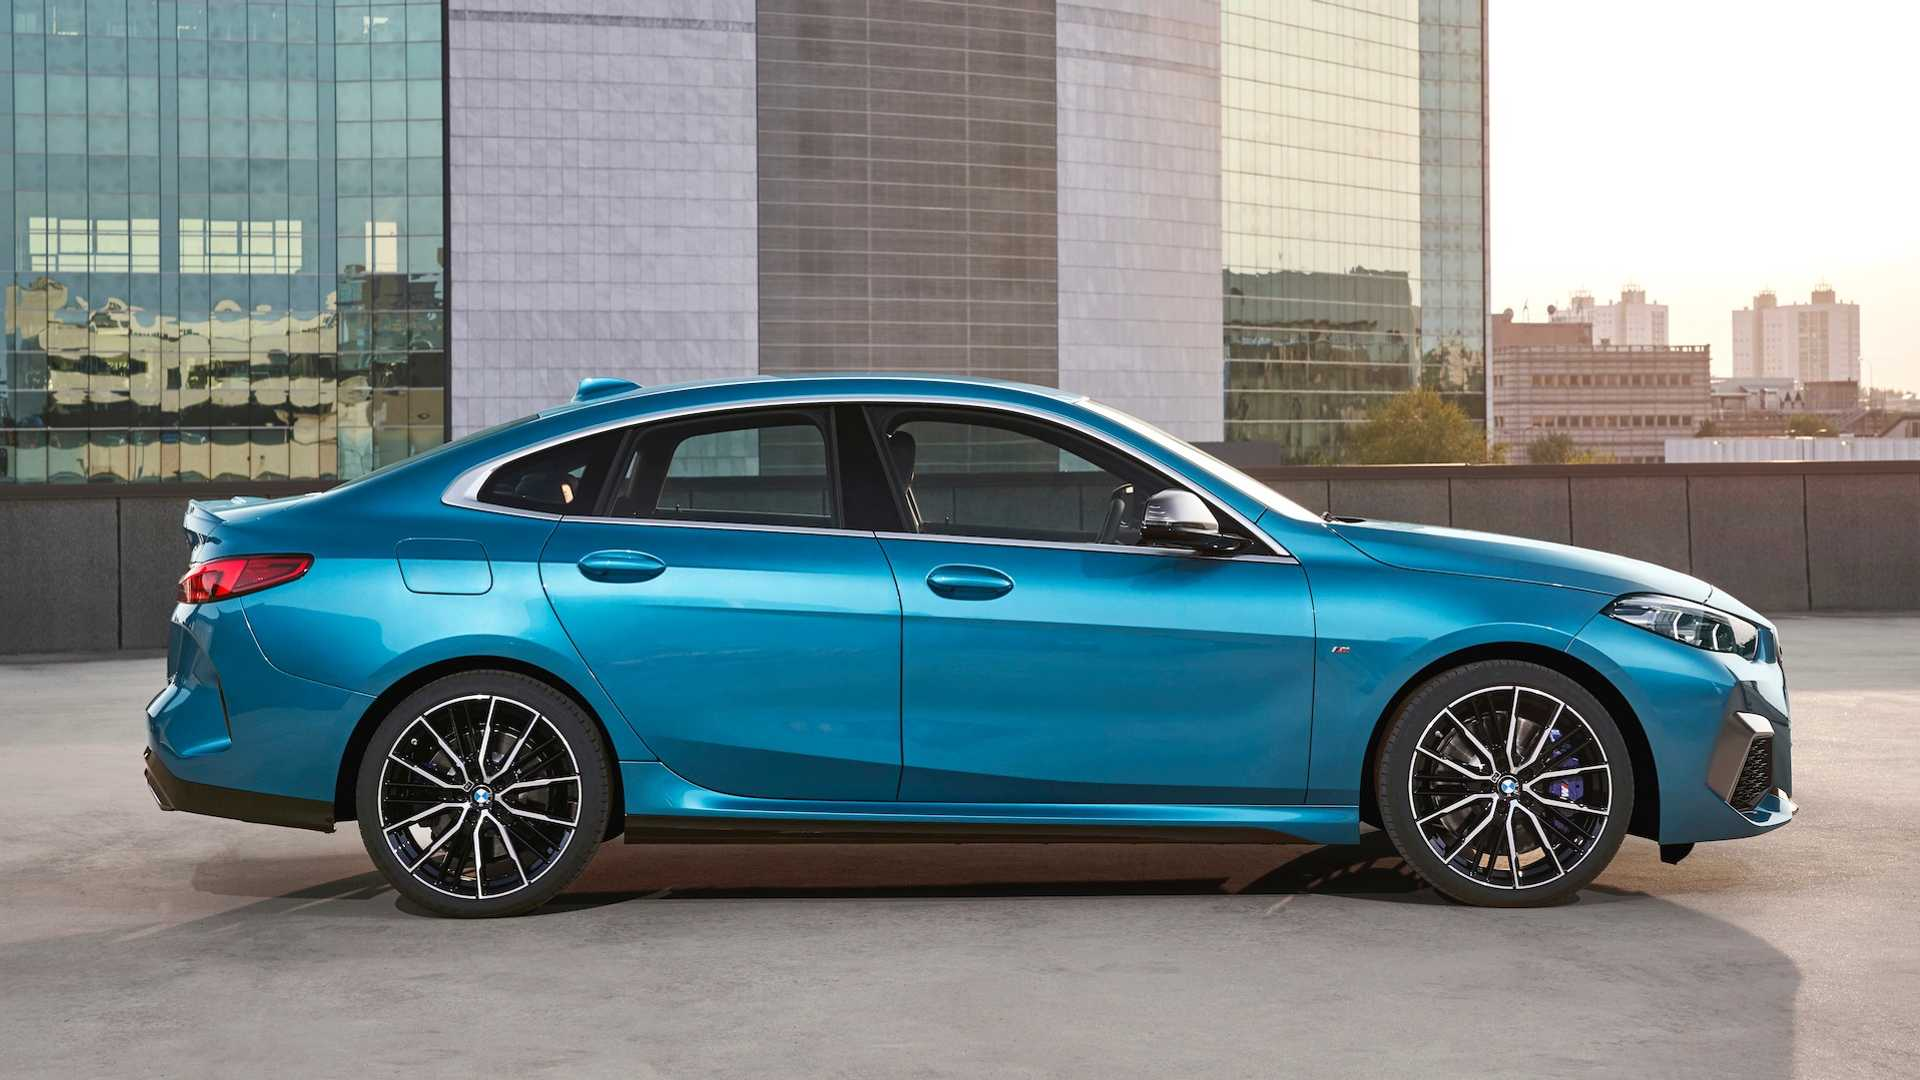 2020-bmw-2-series-gran-coupe-70